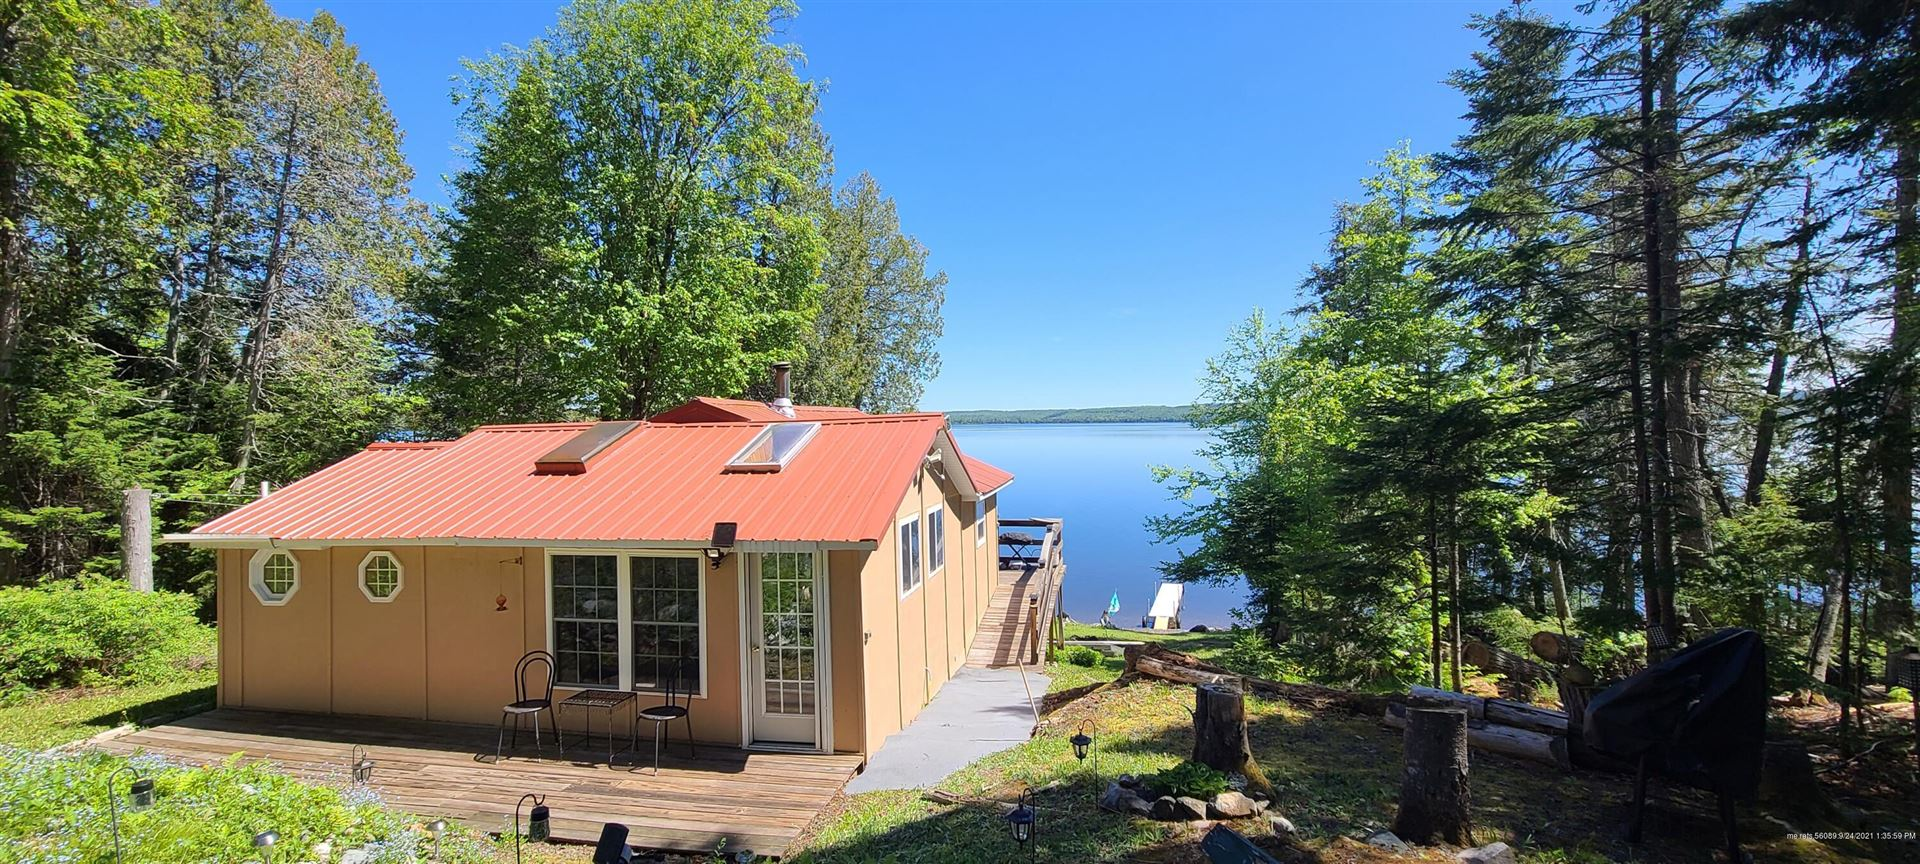 Photo of Lot 34 Square Lake Road, T16 R5 WELS, ME 04779 (MLS # 1509991)